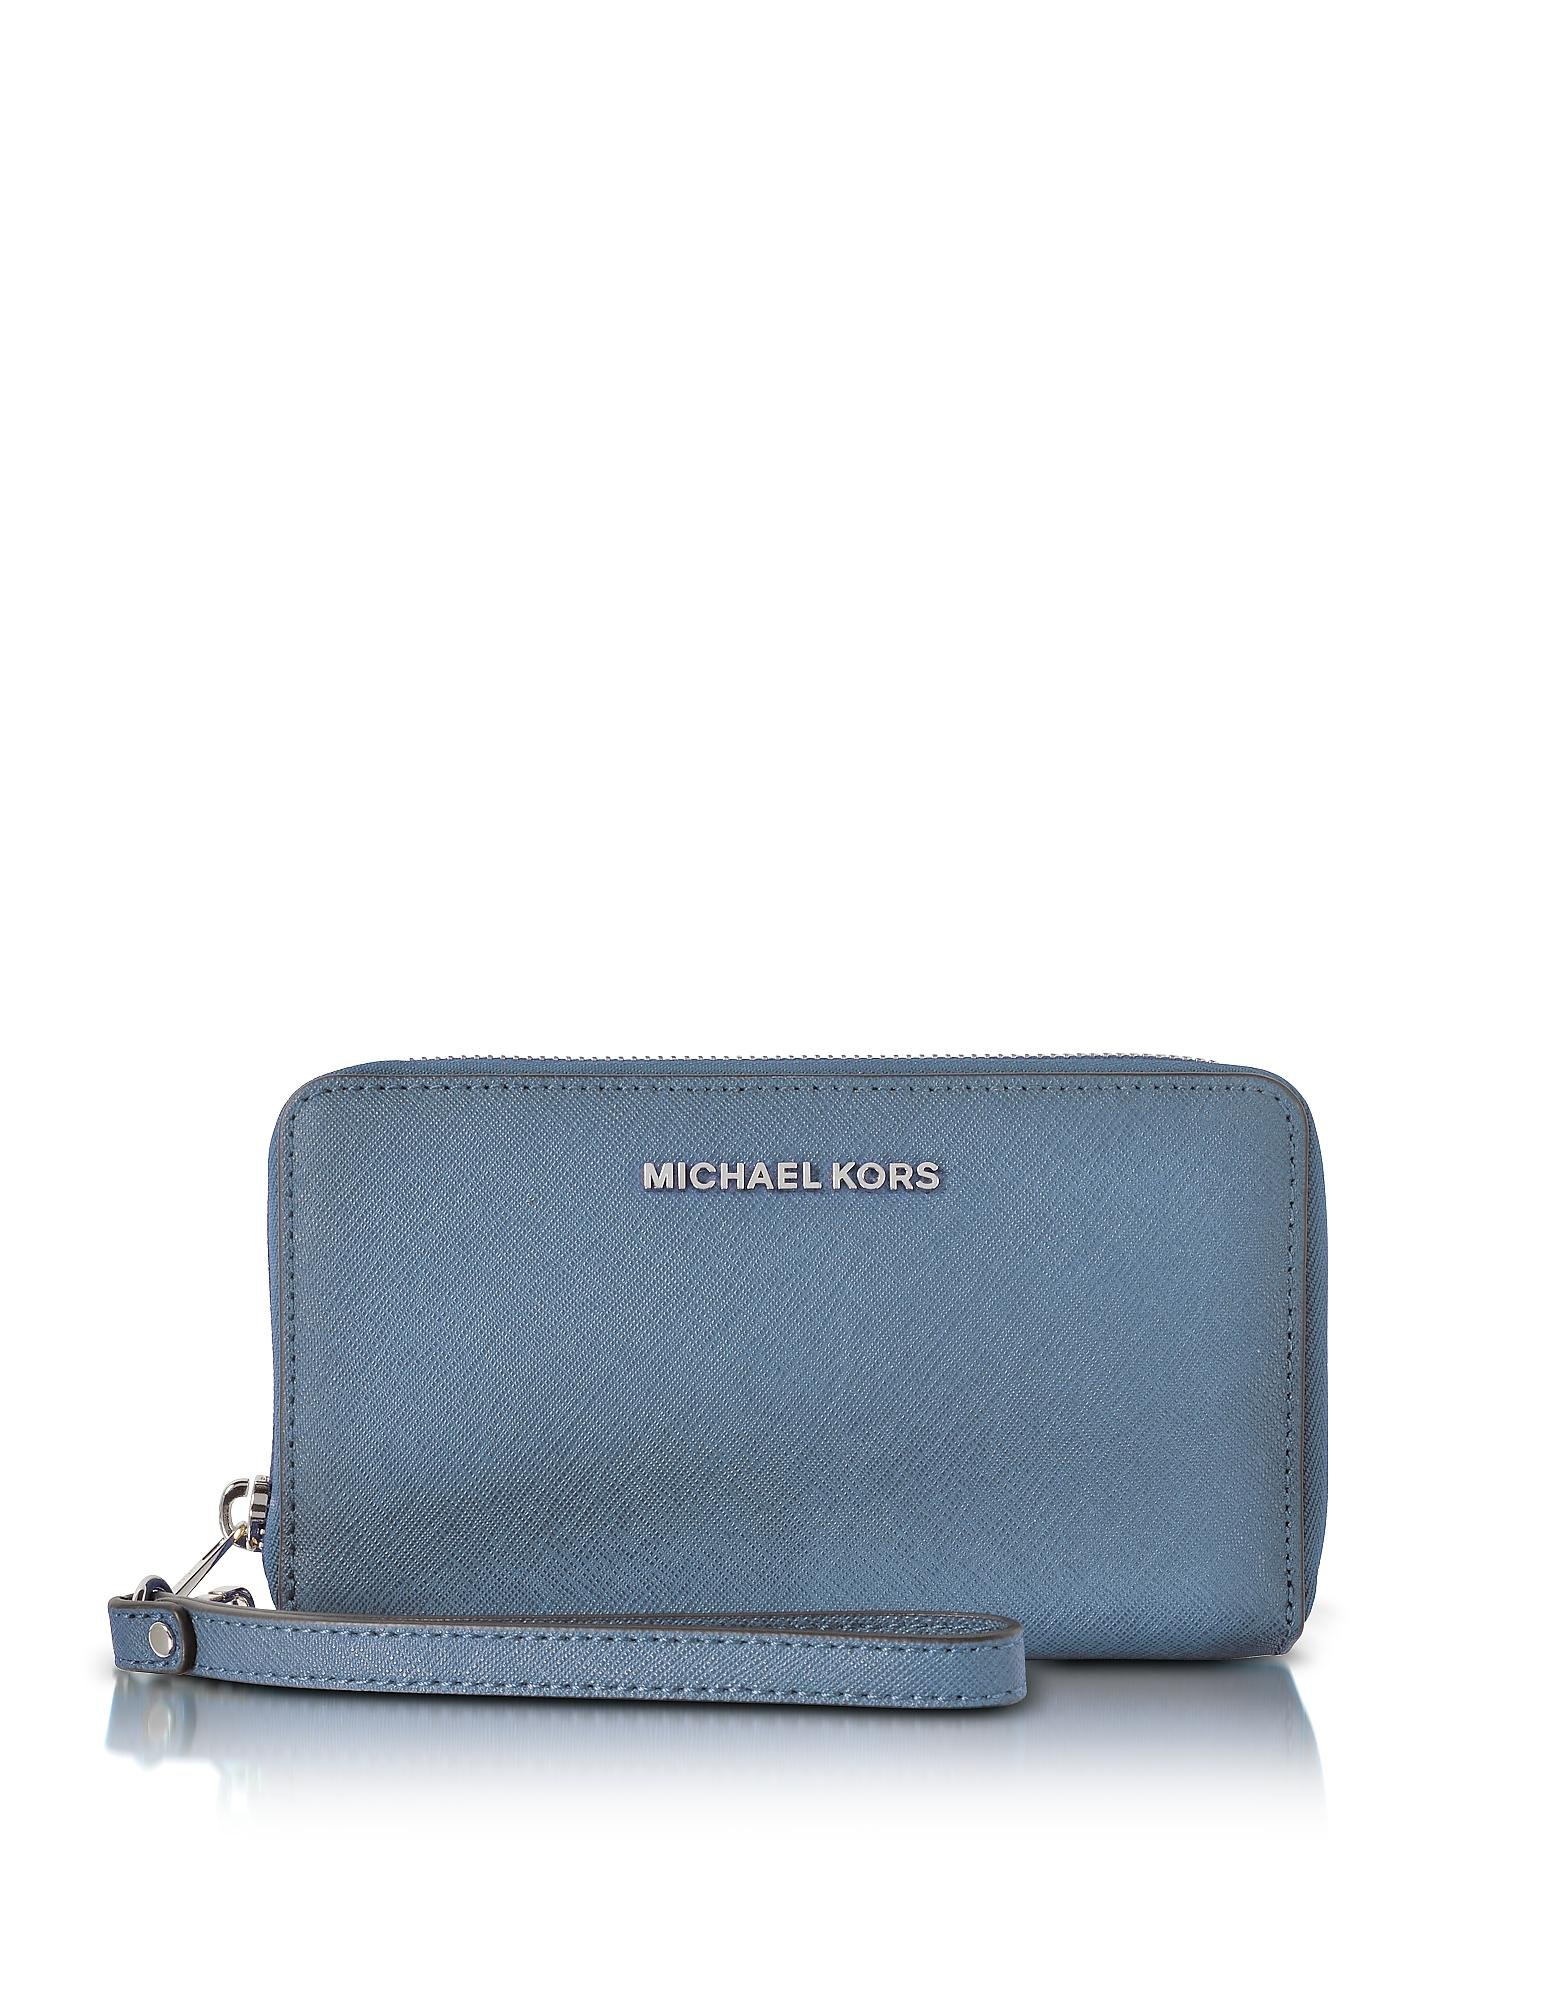 Men's Michael Kors Wallets epitomising all-American glamour, luxury brand Michael Kors is worn by women and men across the globe. Known for wearable, refined elegance, Kors is an expert in ready-to-wear and leather goods.